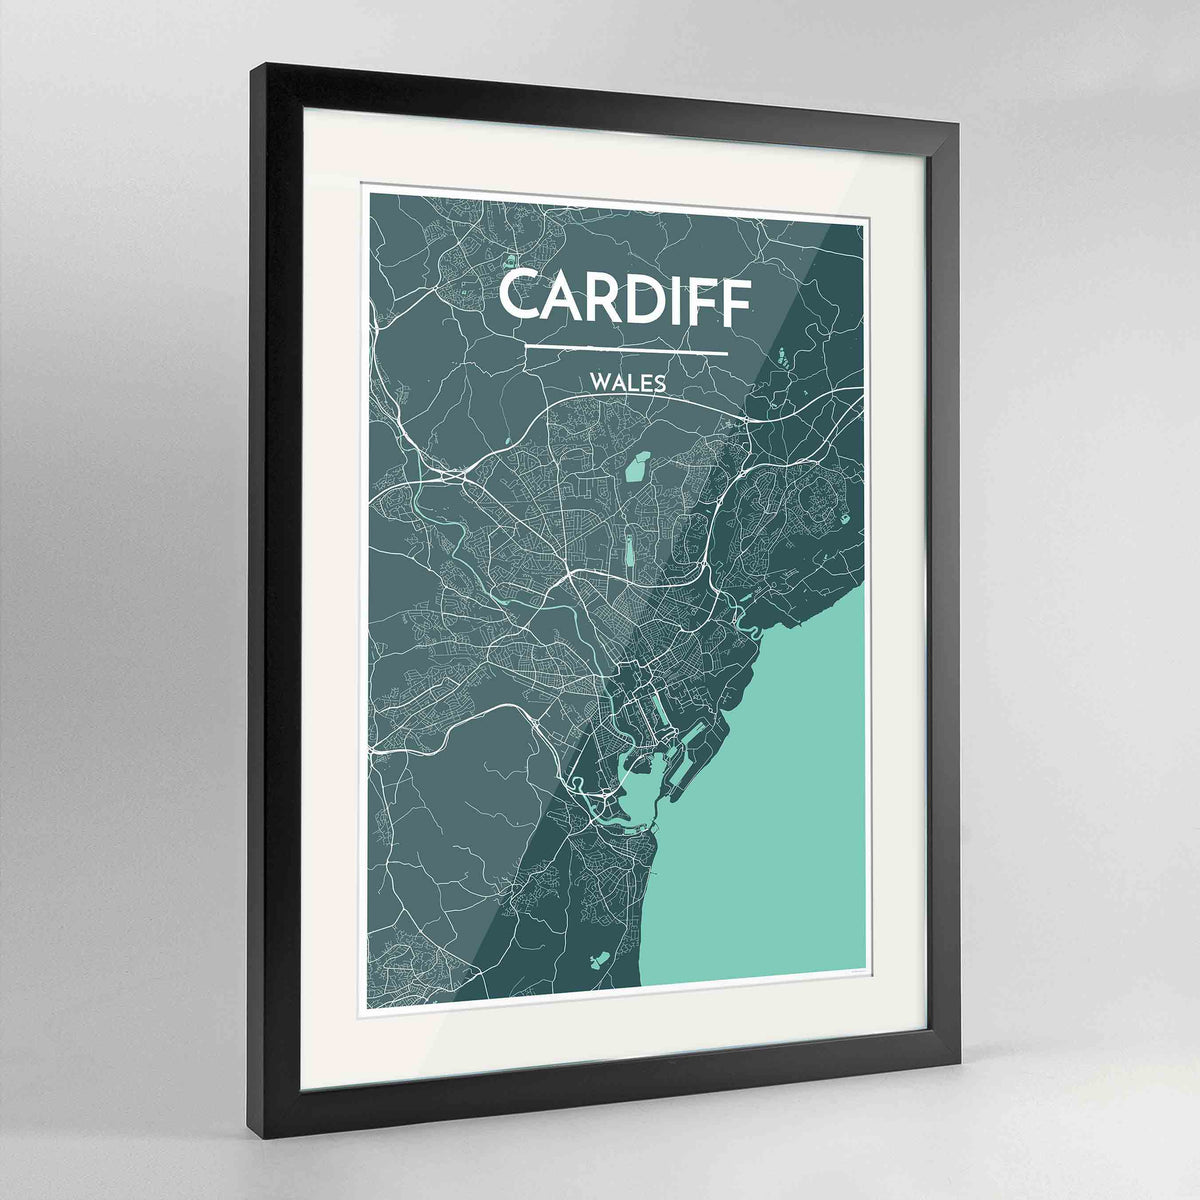 "Framed Cardiff Map Art Print 24x36"" Contemporary Black frame Point Two Design Group"